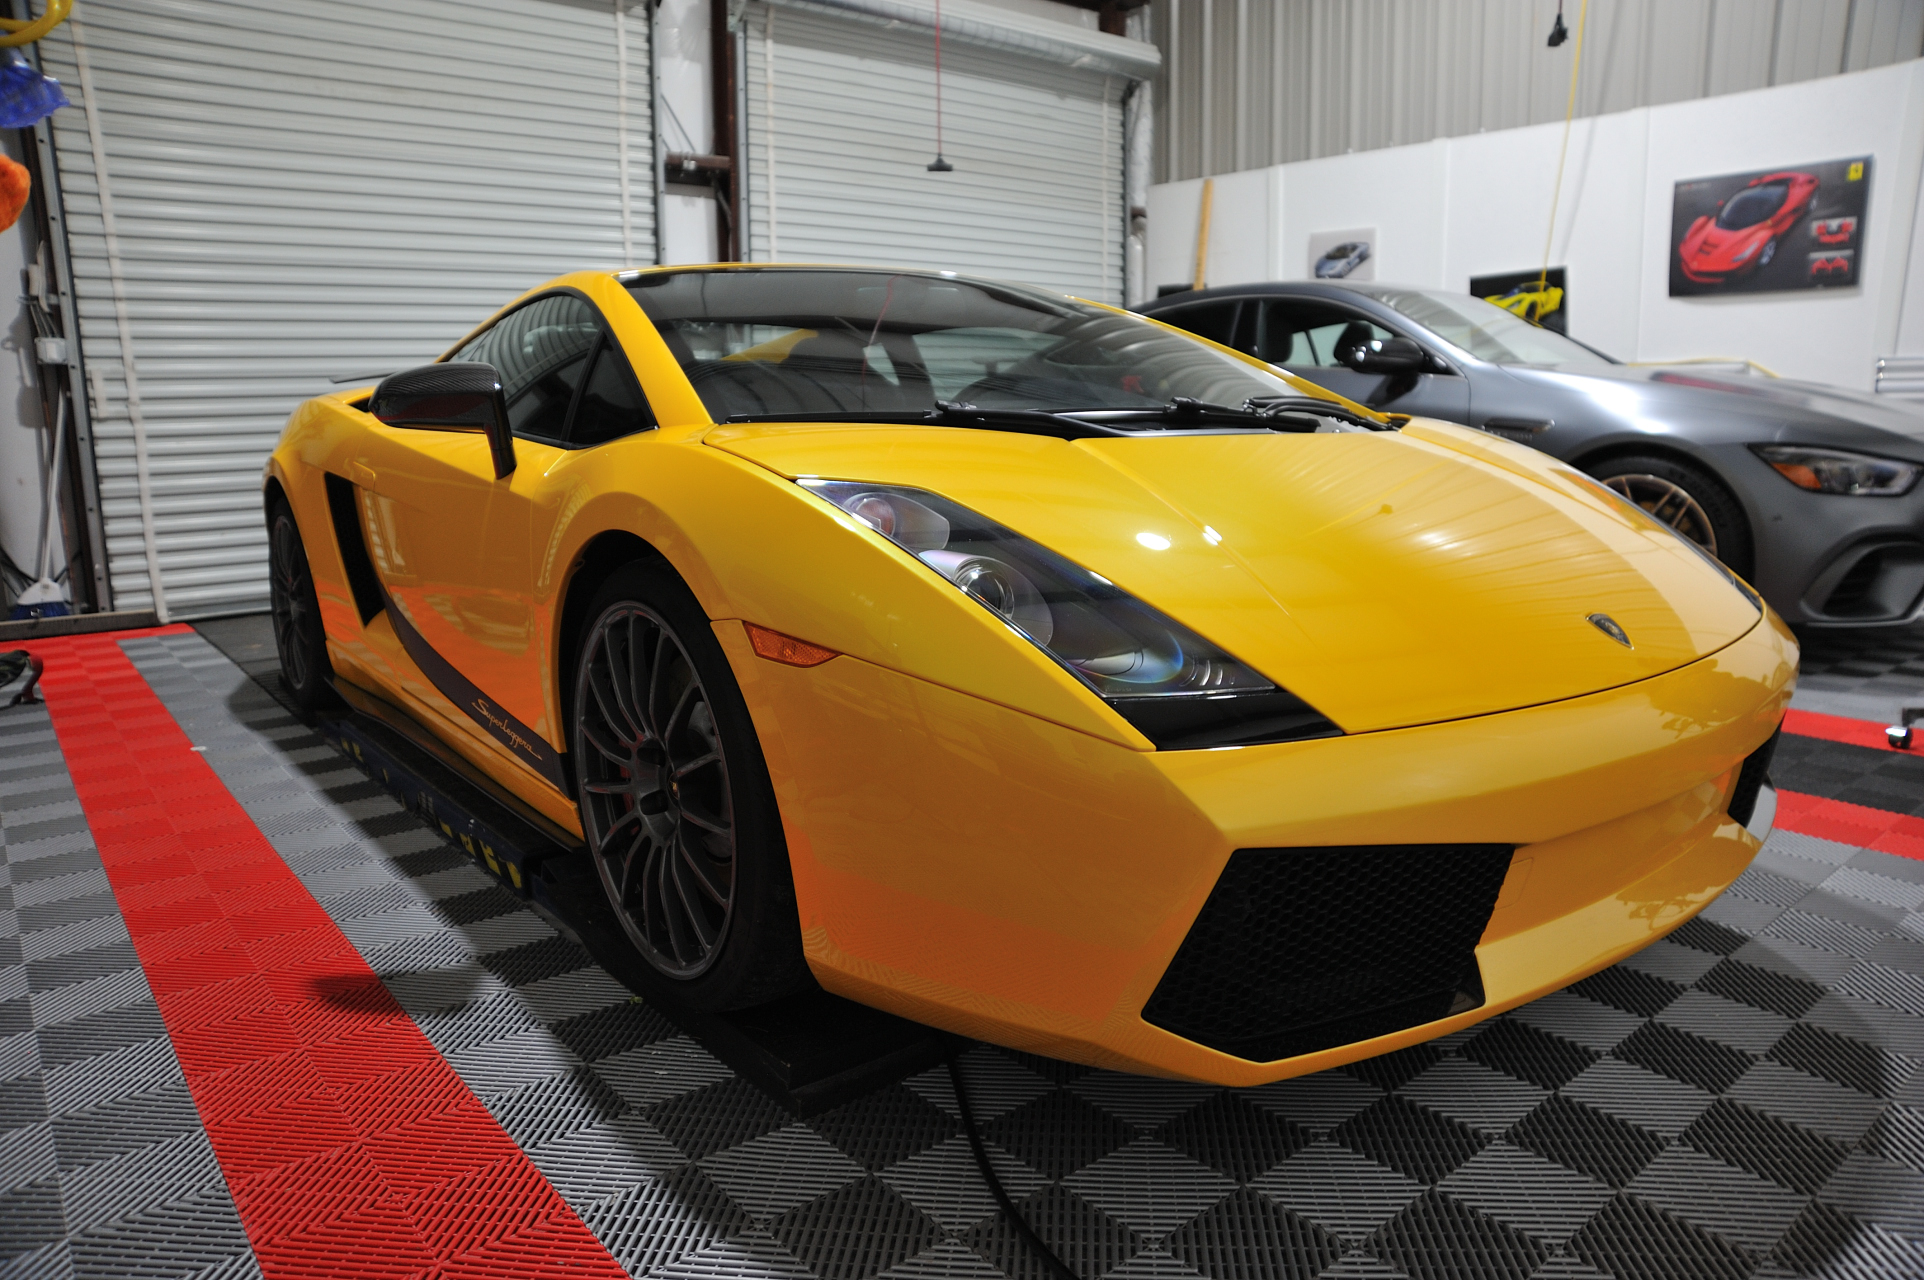 Ceramic Coating of a 2014 Lamborghini Gallardo